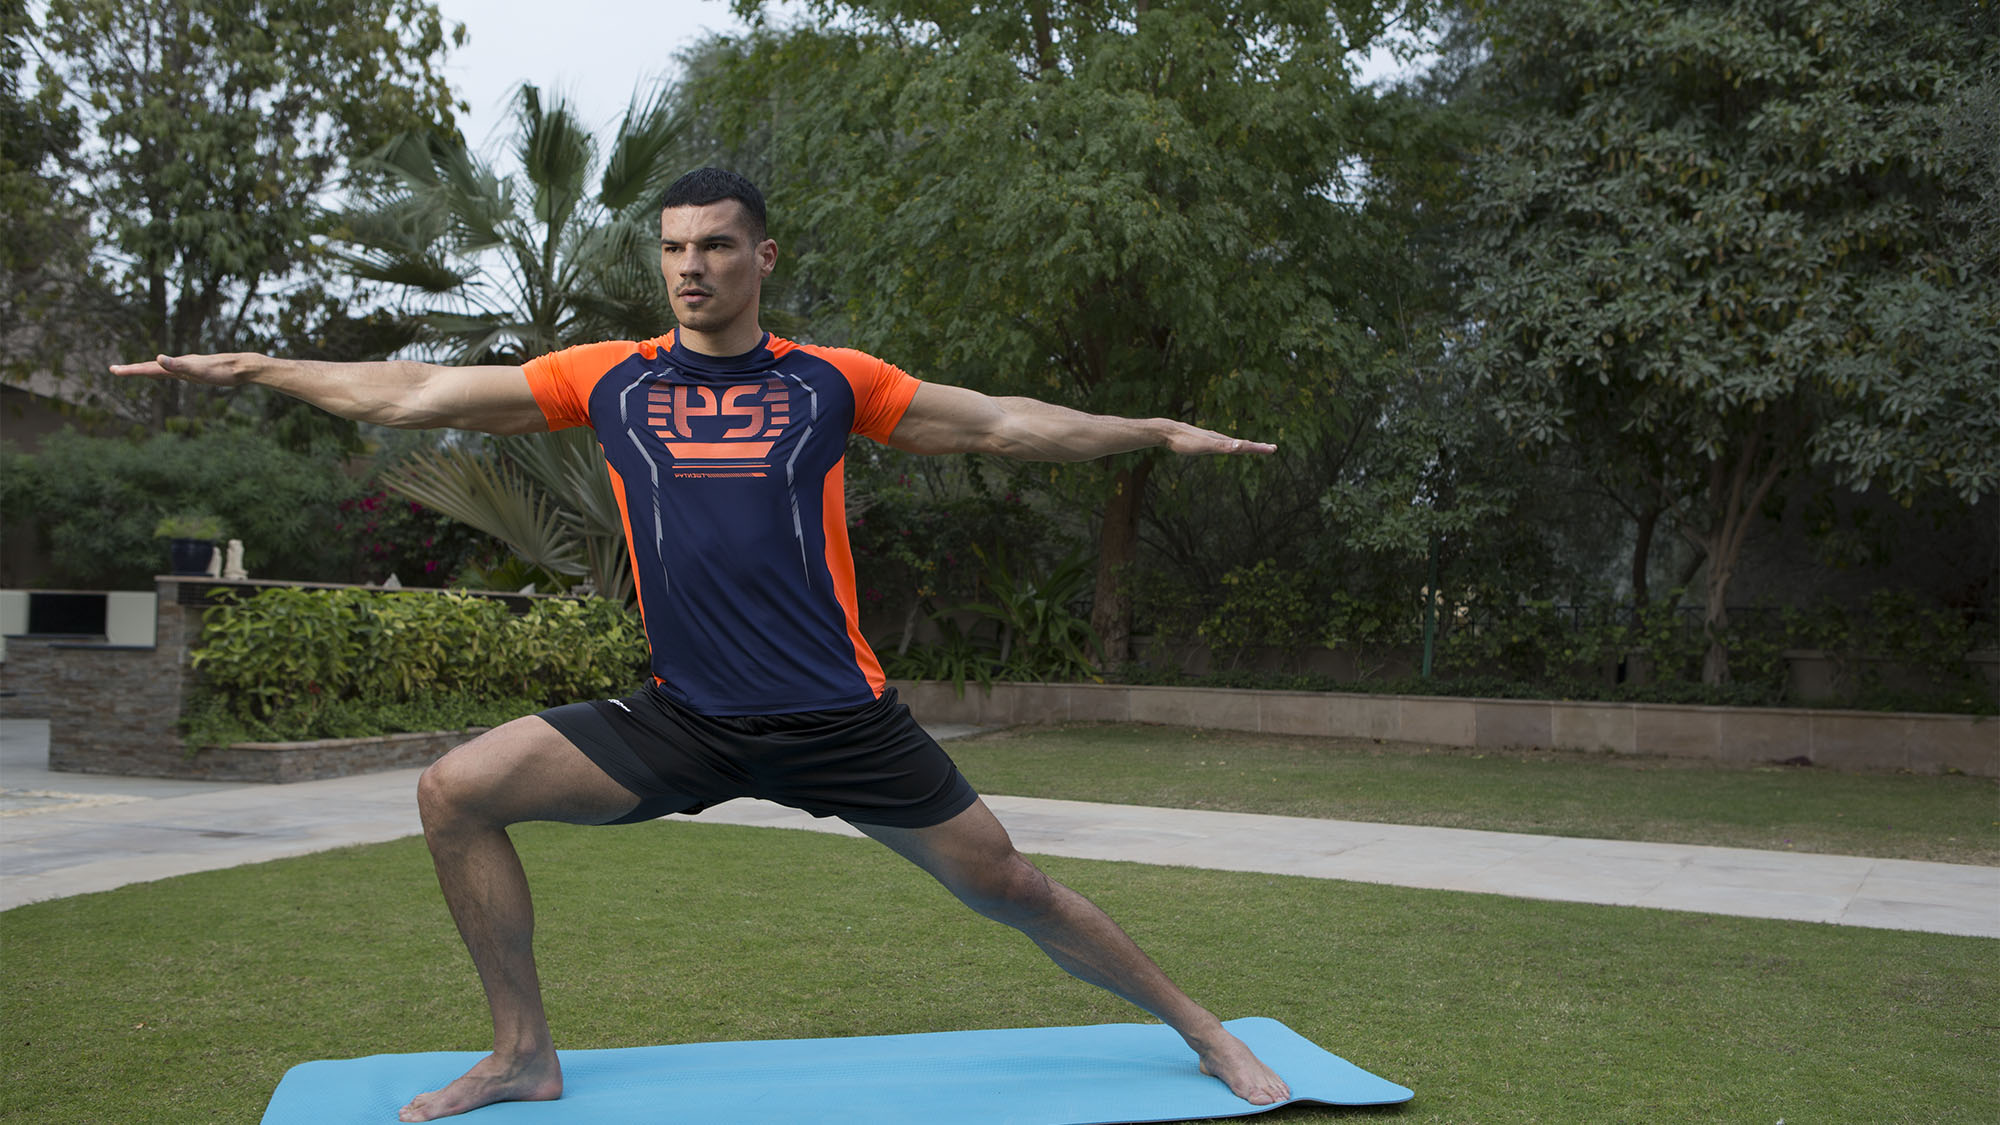 MEN'S ACTIVEWEAR FOR ANYWHERE